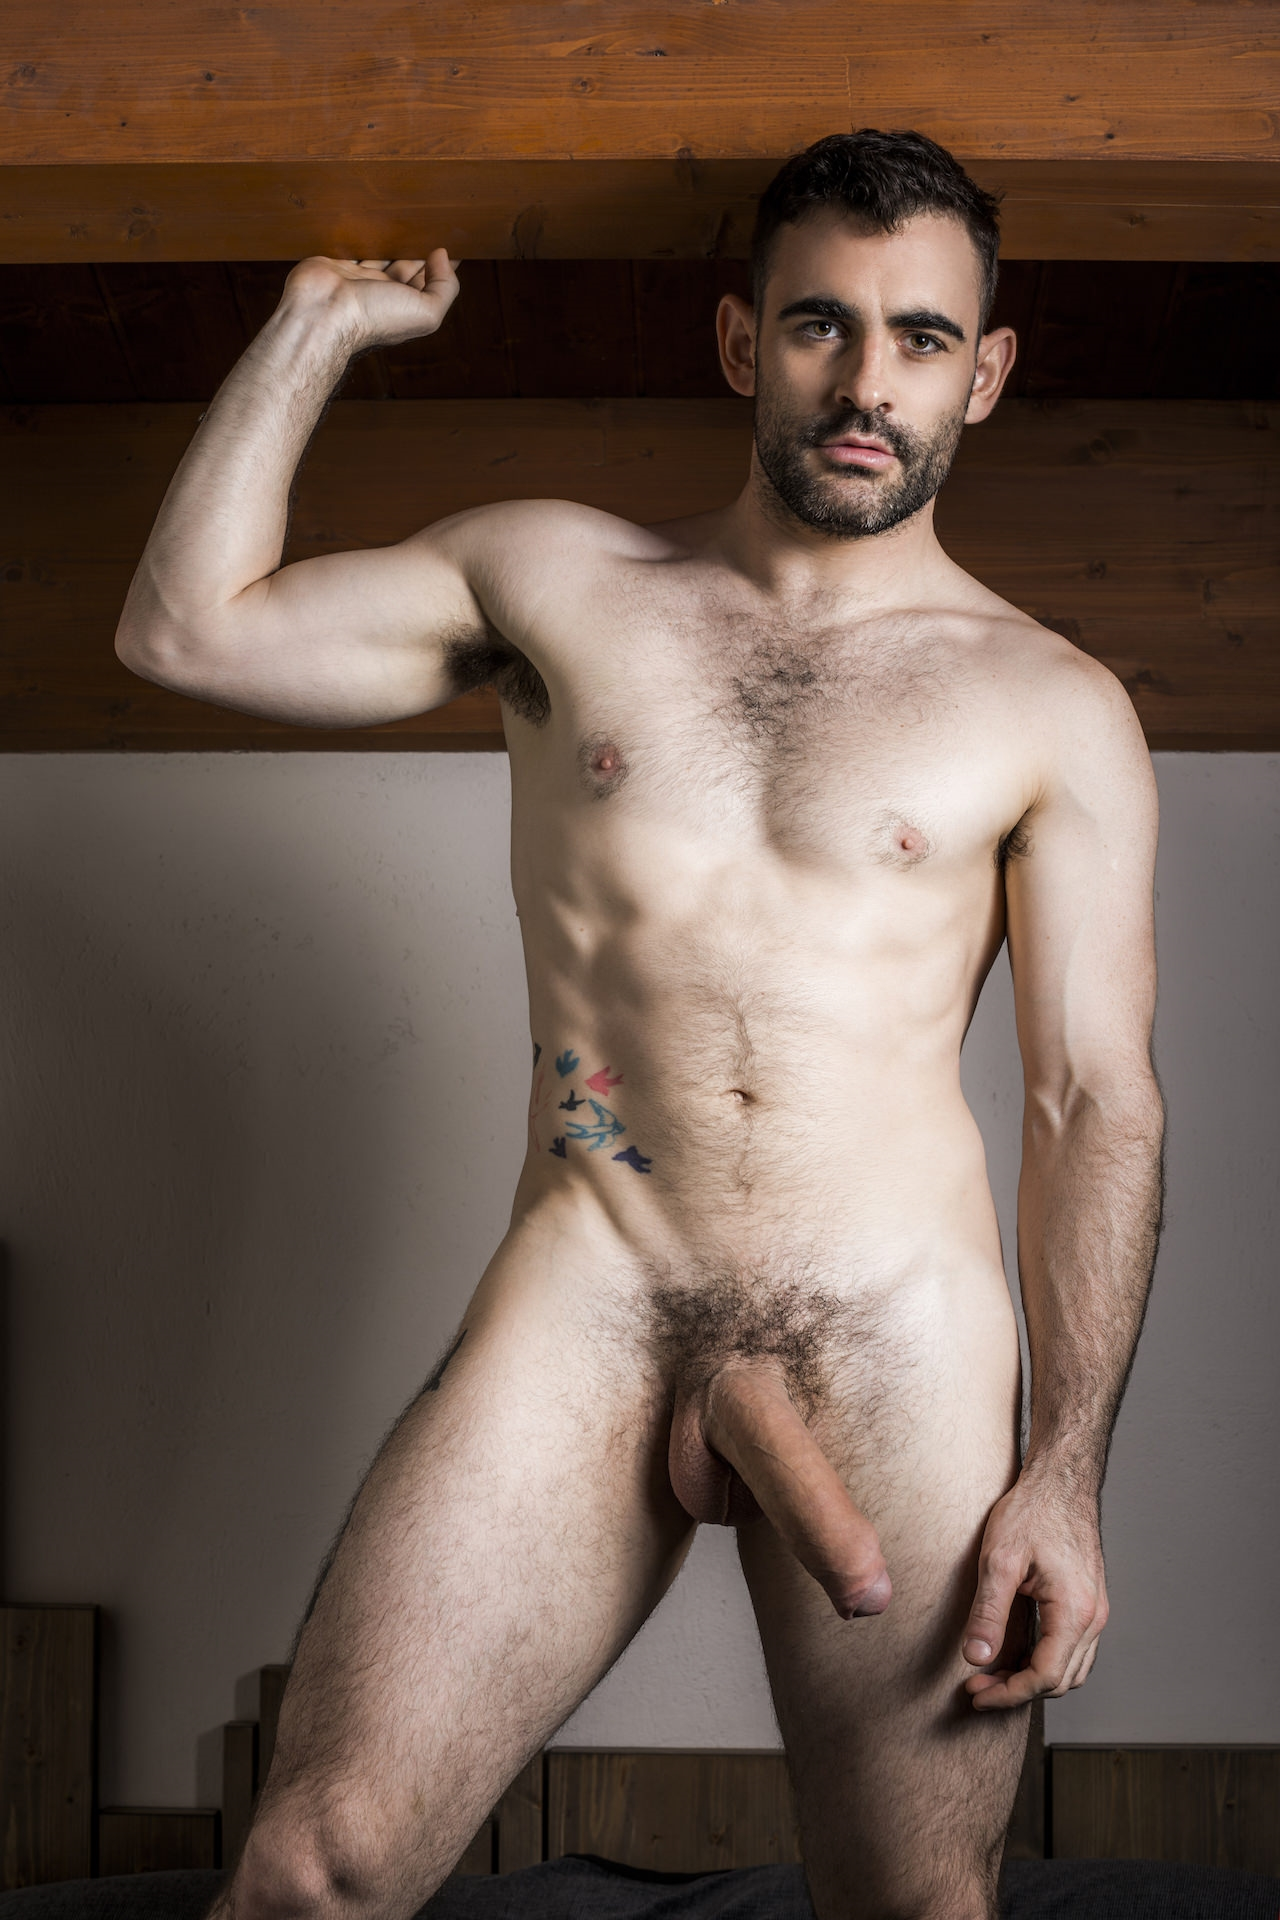 Sexy Australian muscle hunk Max Arion sports 10 inch uncut dick 019 porn solo gay photo - Gorgeous Australian hunk Max Arion sports a 10-inch uncut dick between his legs